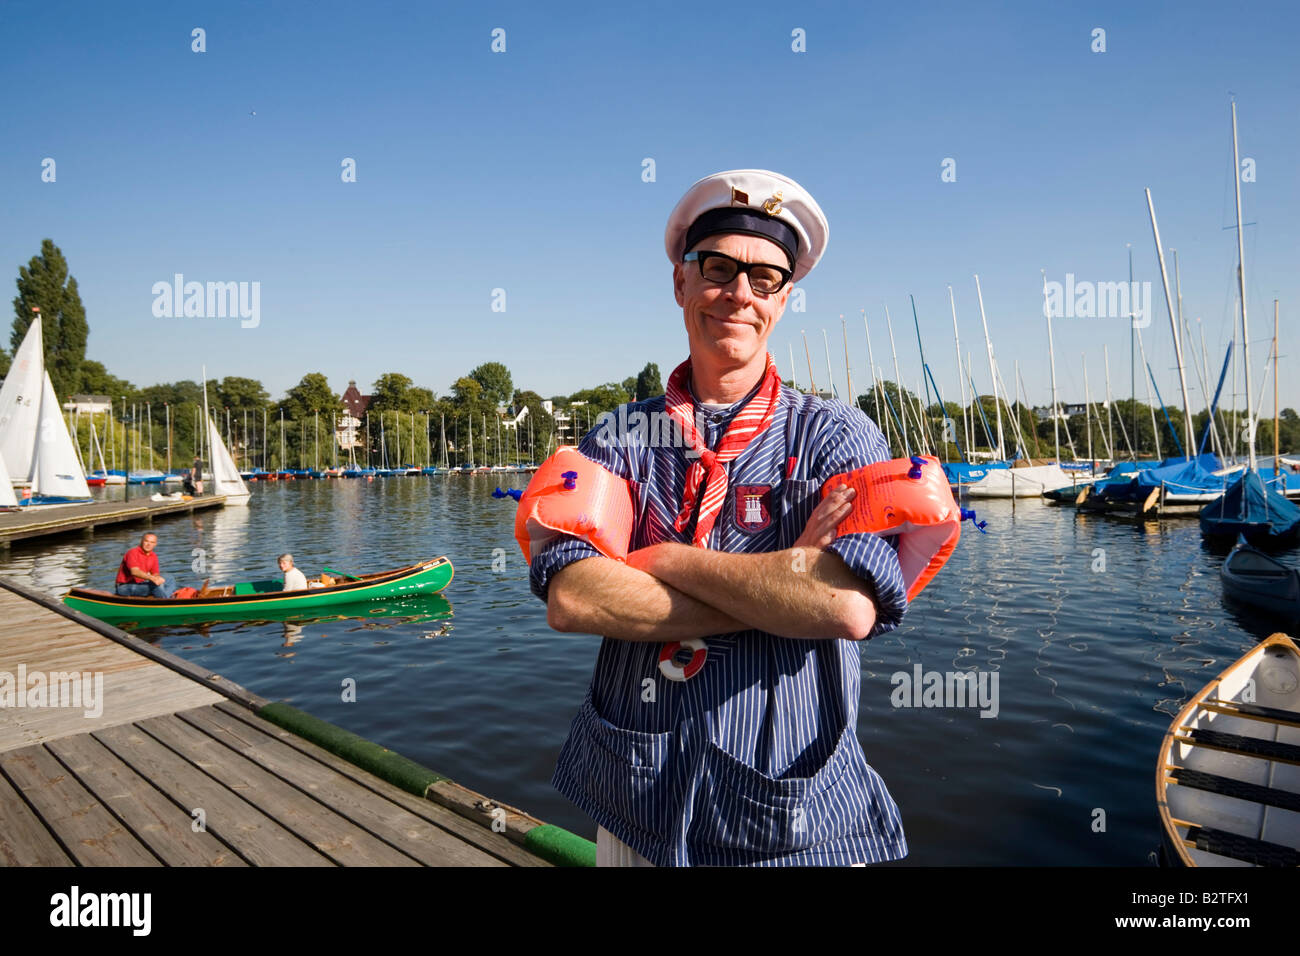 Fisher smiling at camera, Man wearing a Fischerhemd a typical shirt of a fisher, water wings and a sailor's - Stock Image